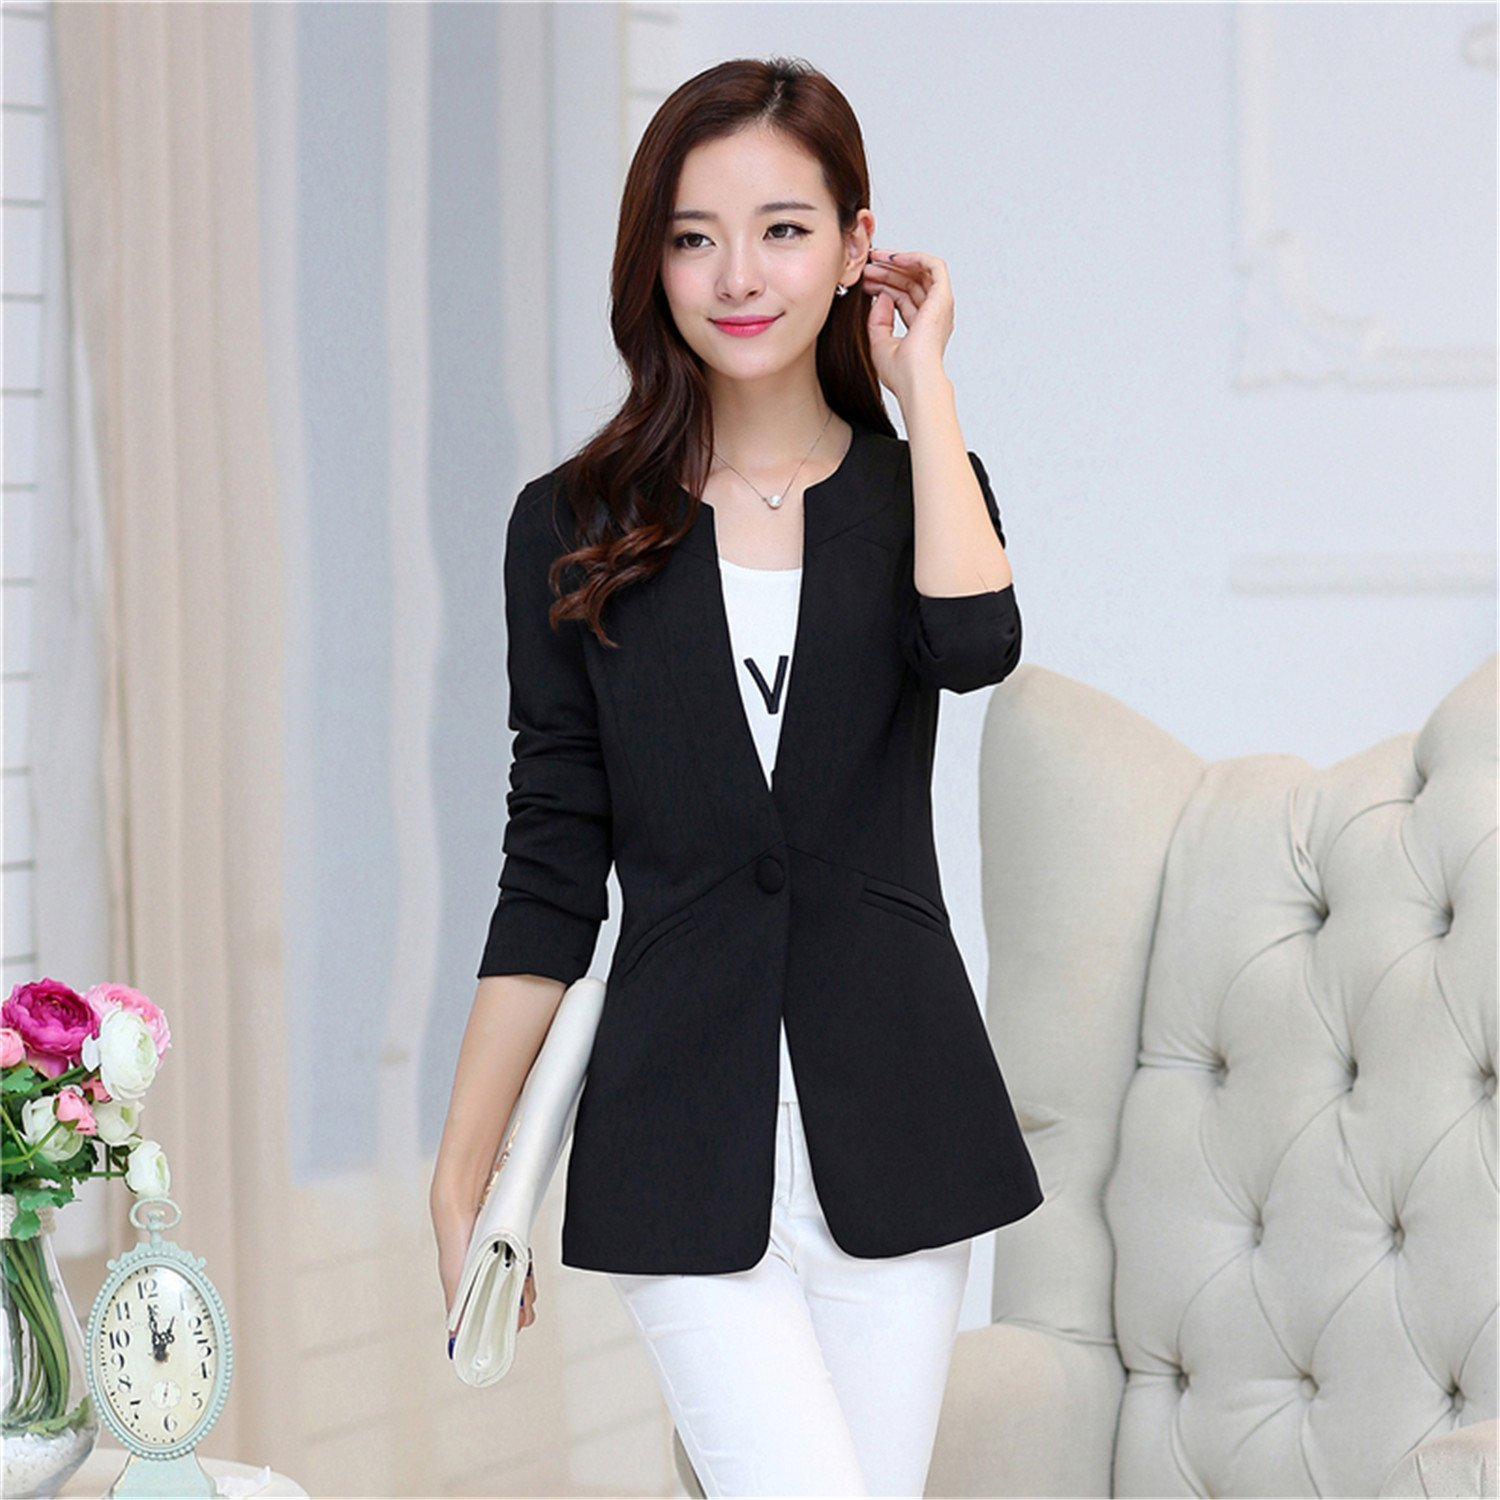 Toping Fine Autumn Women Blazer Coat Elegant Suit Jacket Outwear Long Jackets Coat 5XL Tops at Amazon Womens Clothing store: